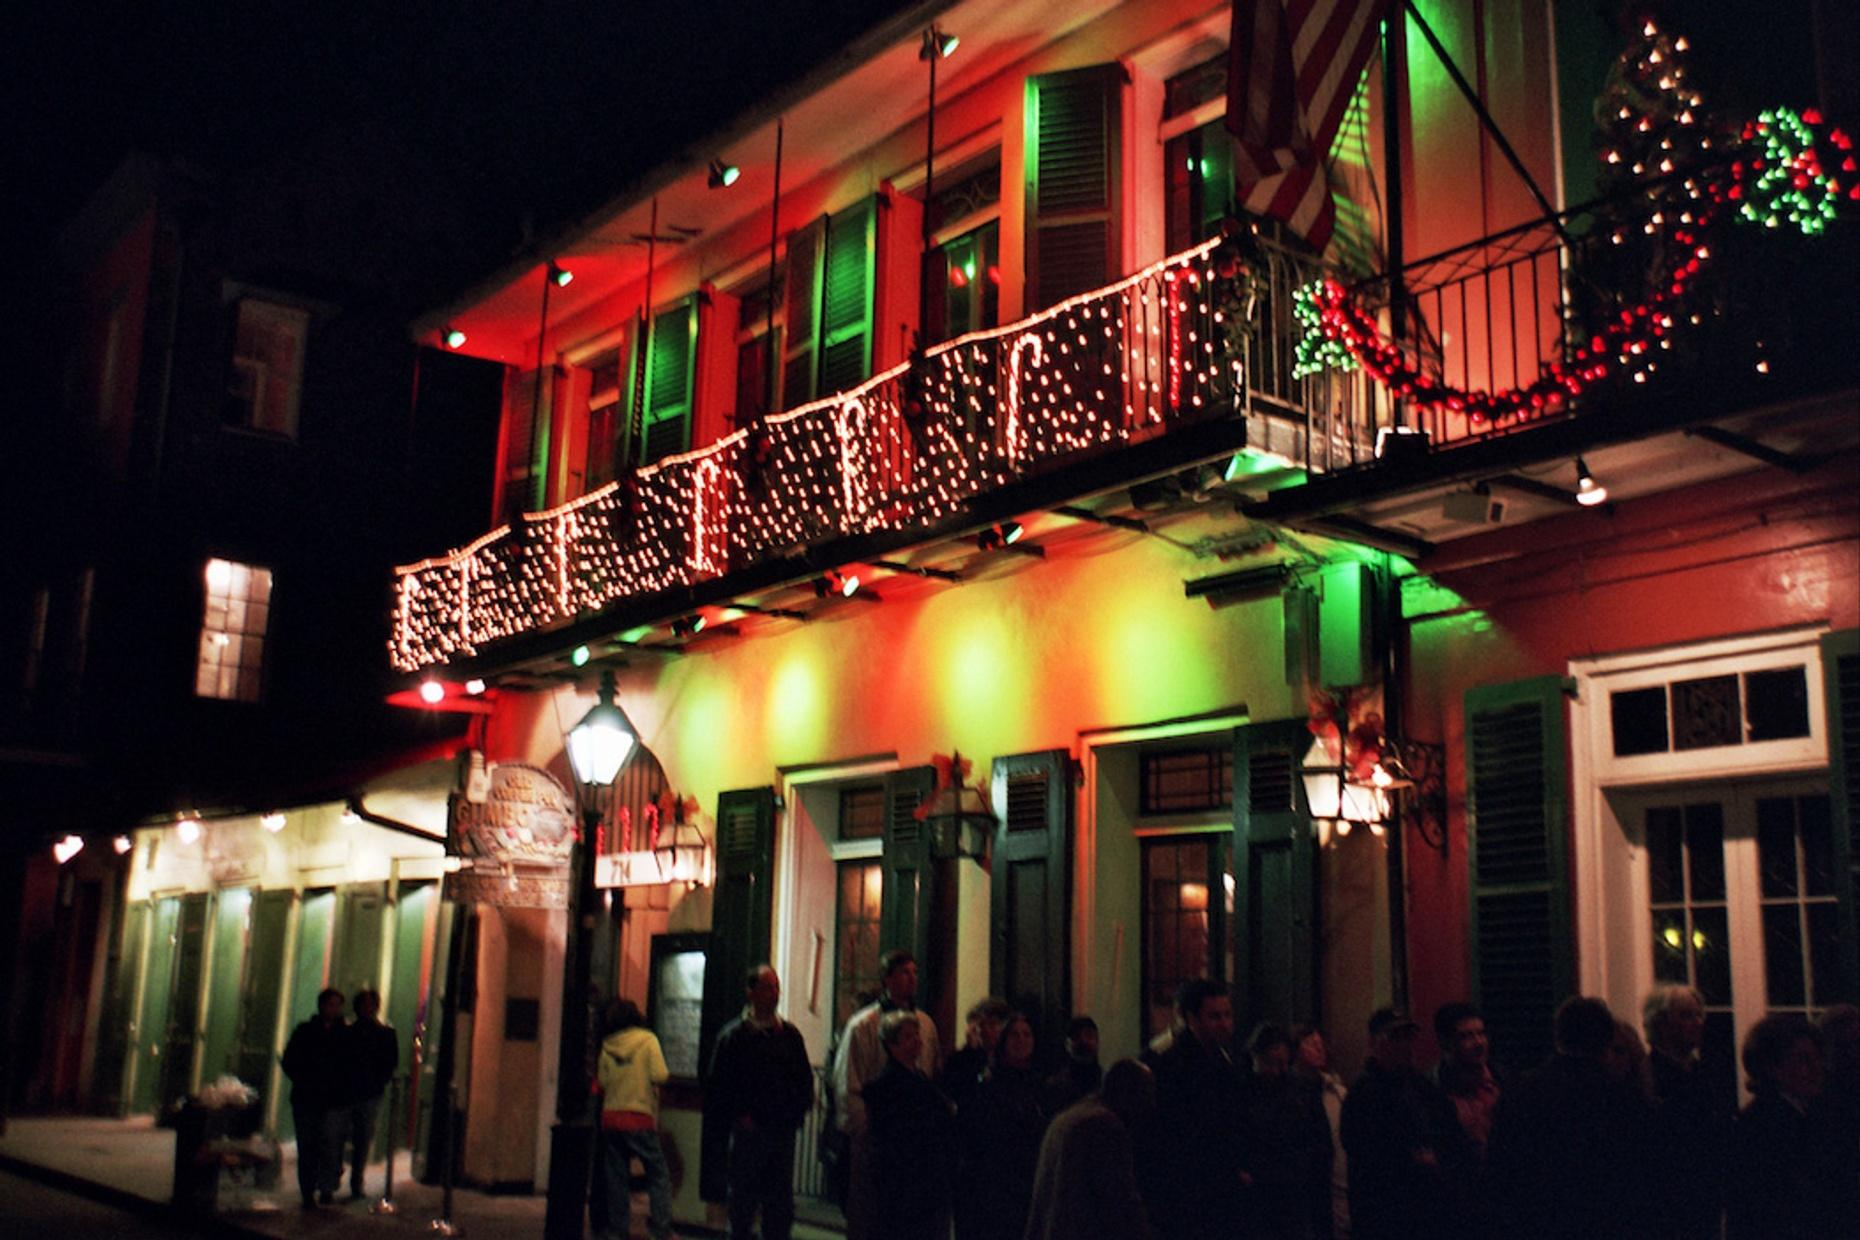 French Quarter Christmas Tour in New Orleans